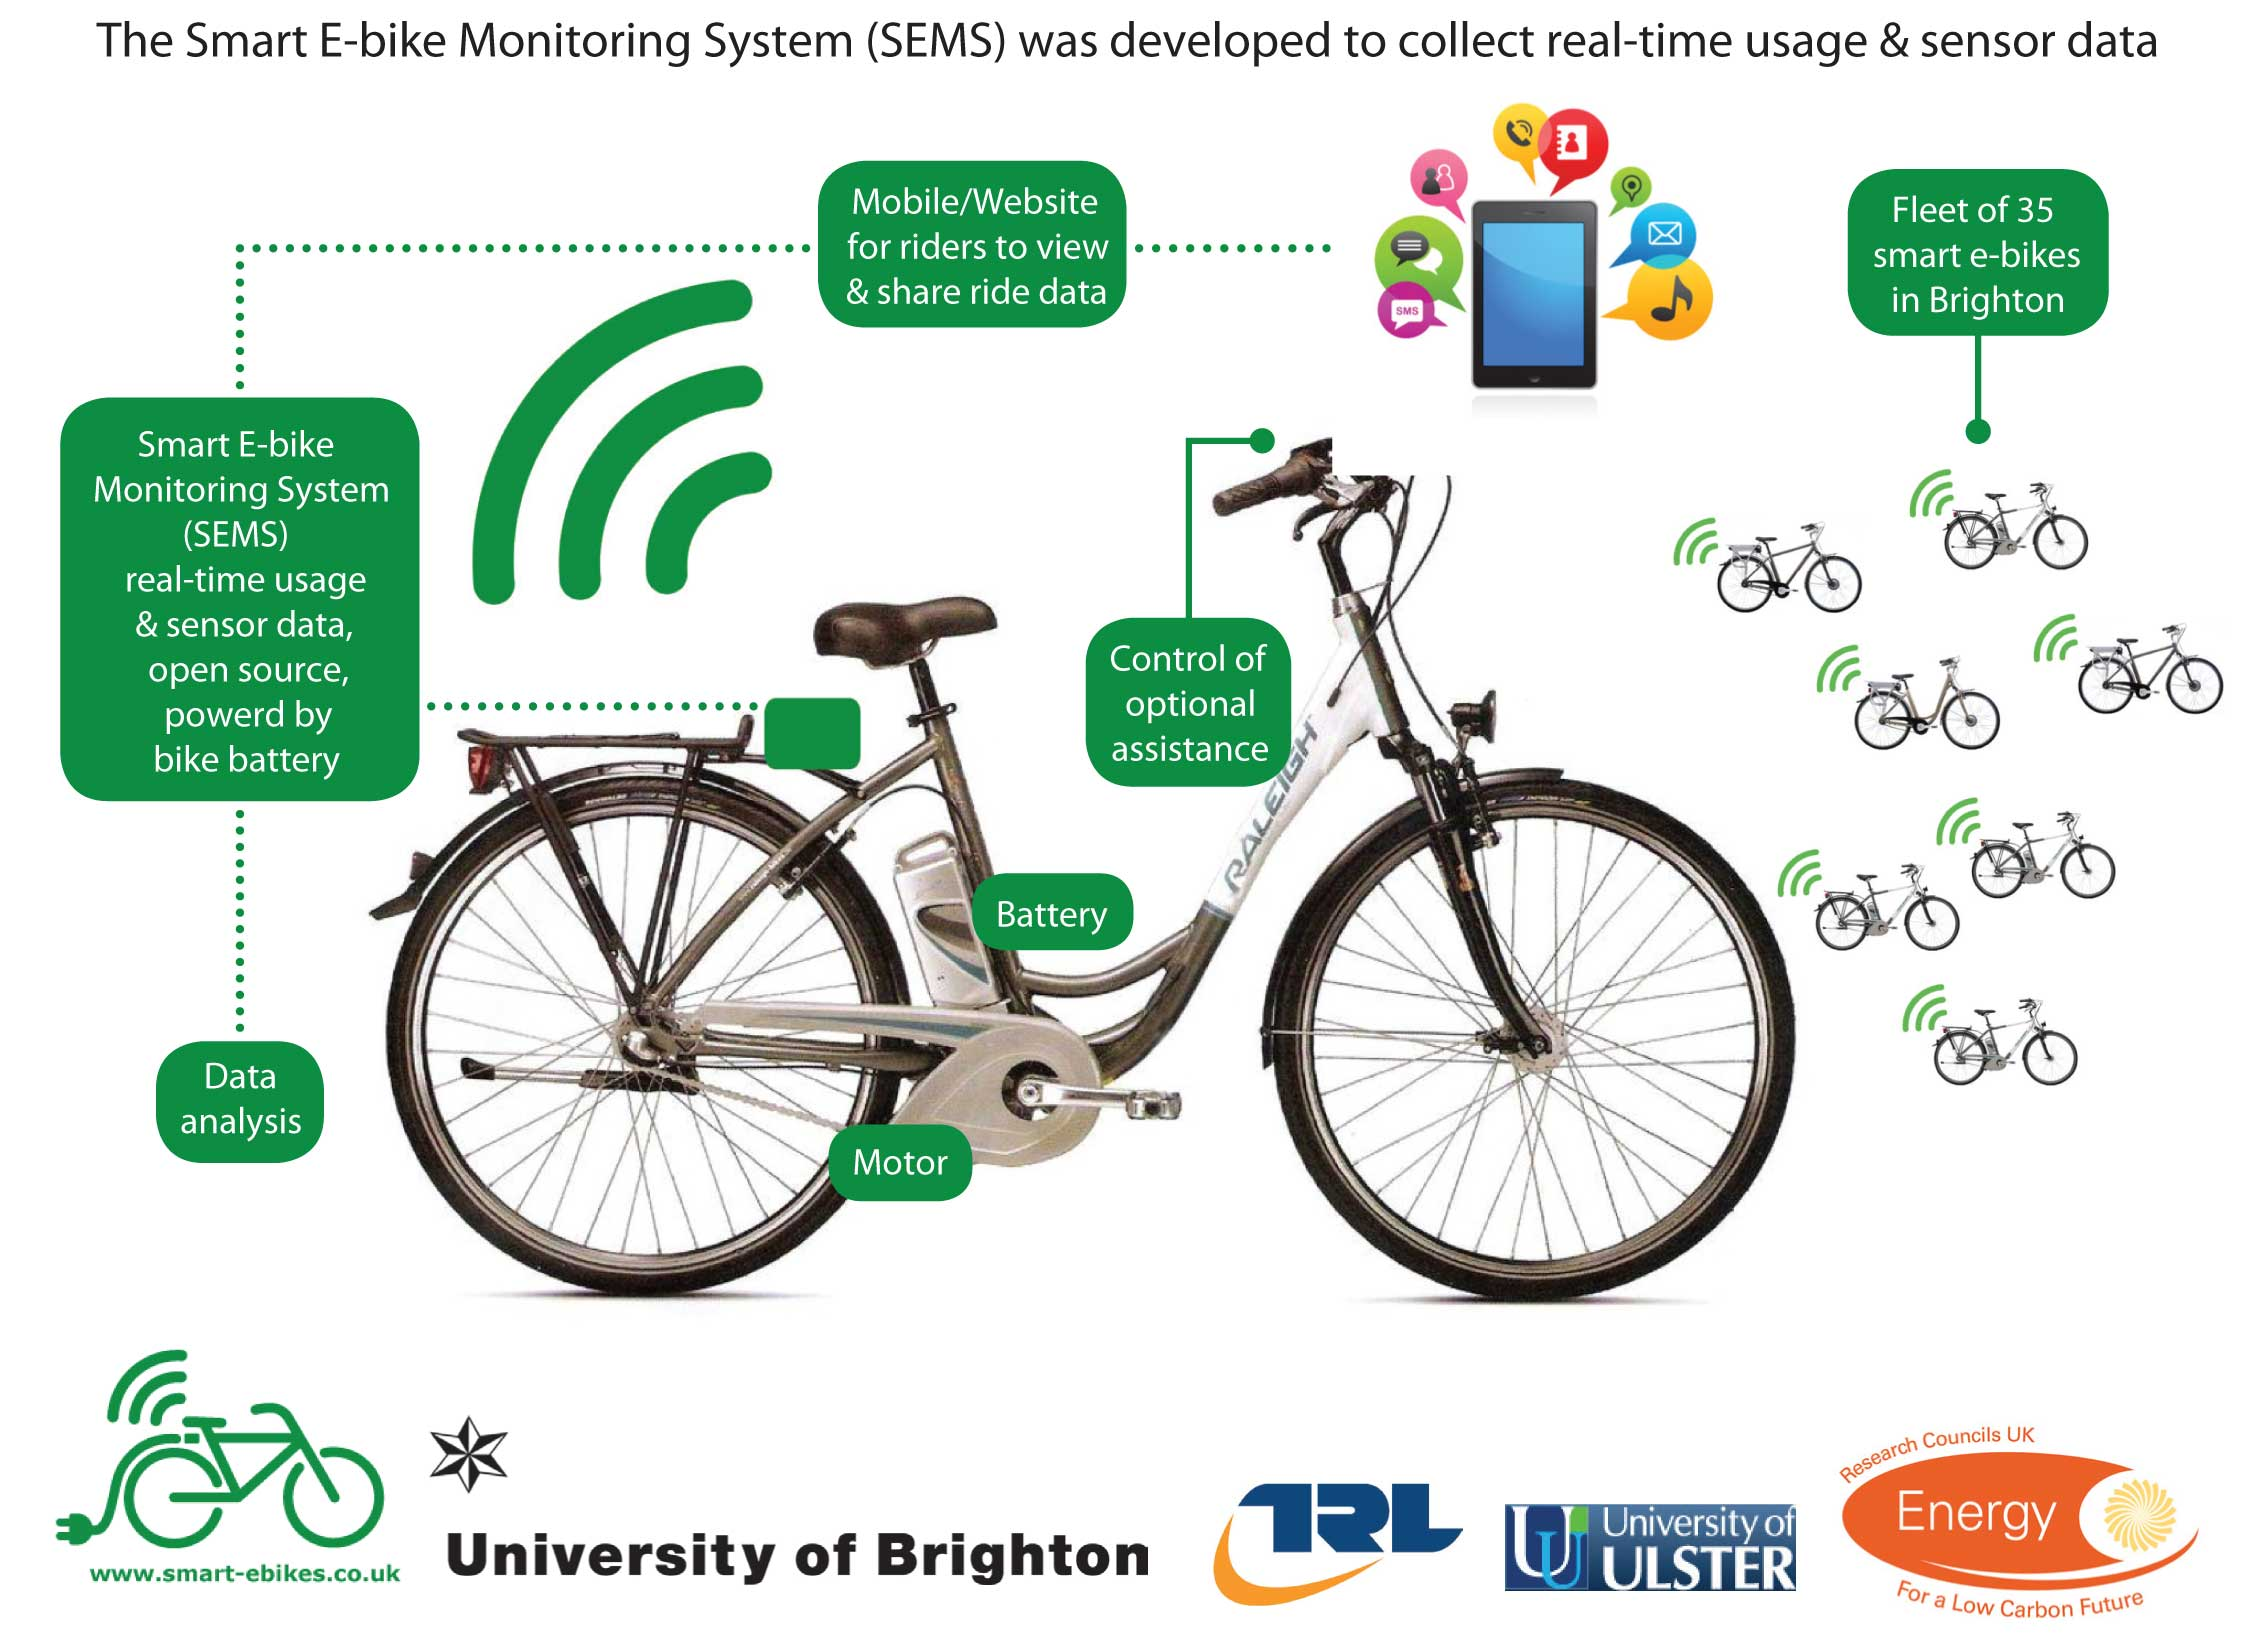 Smart E-Bike Monitoring System - Cycling Innovation on Idea Hunt